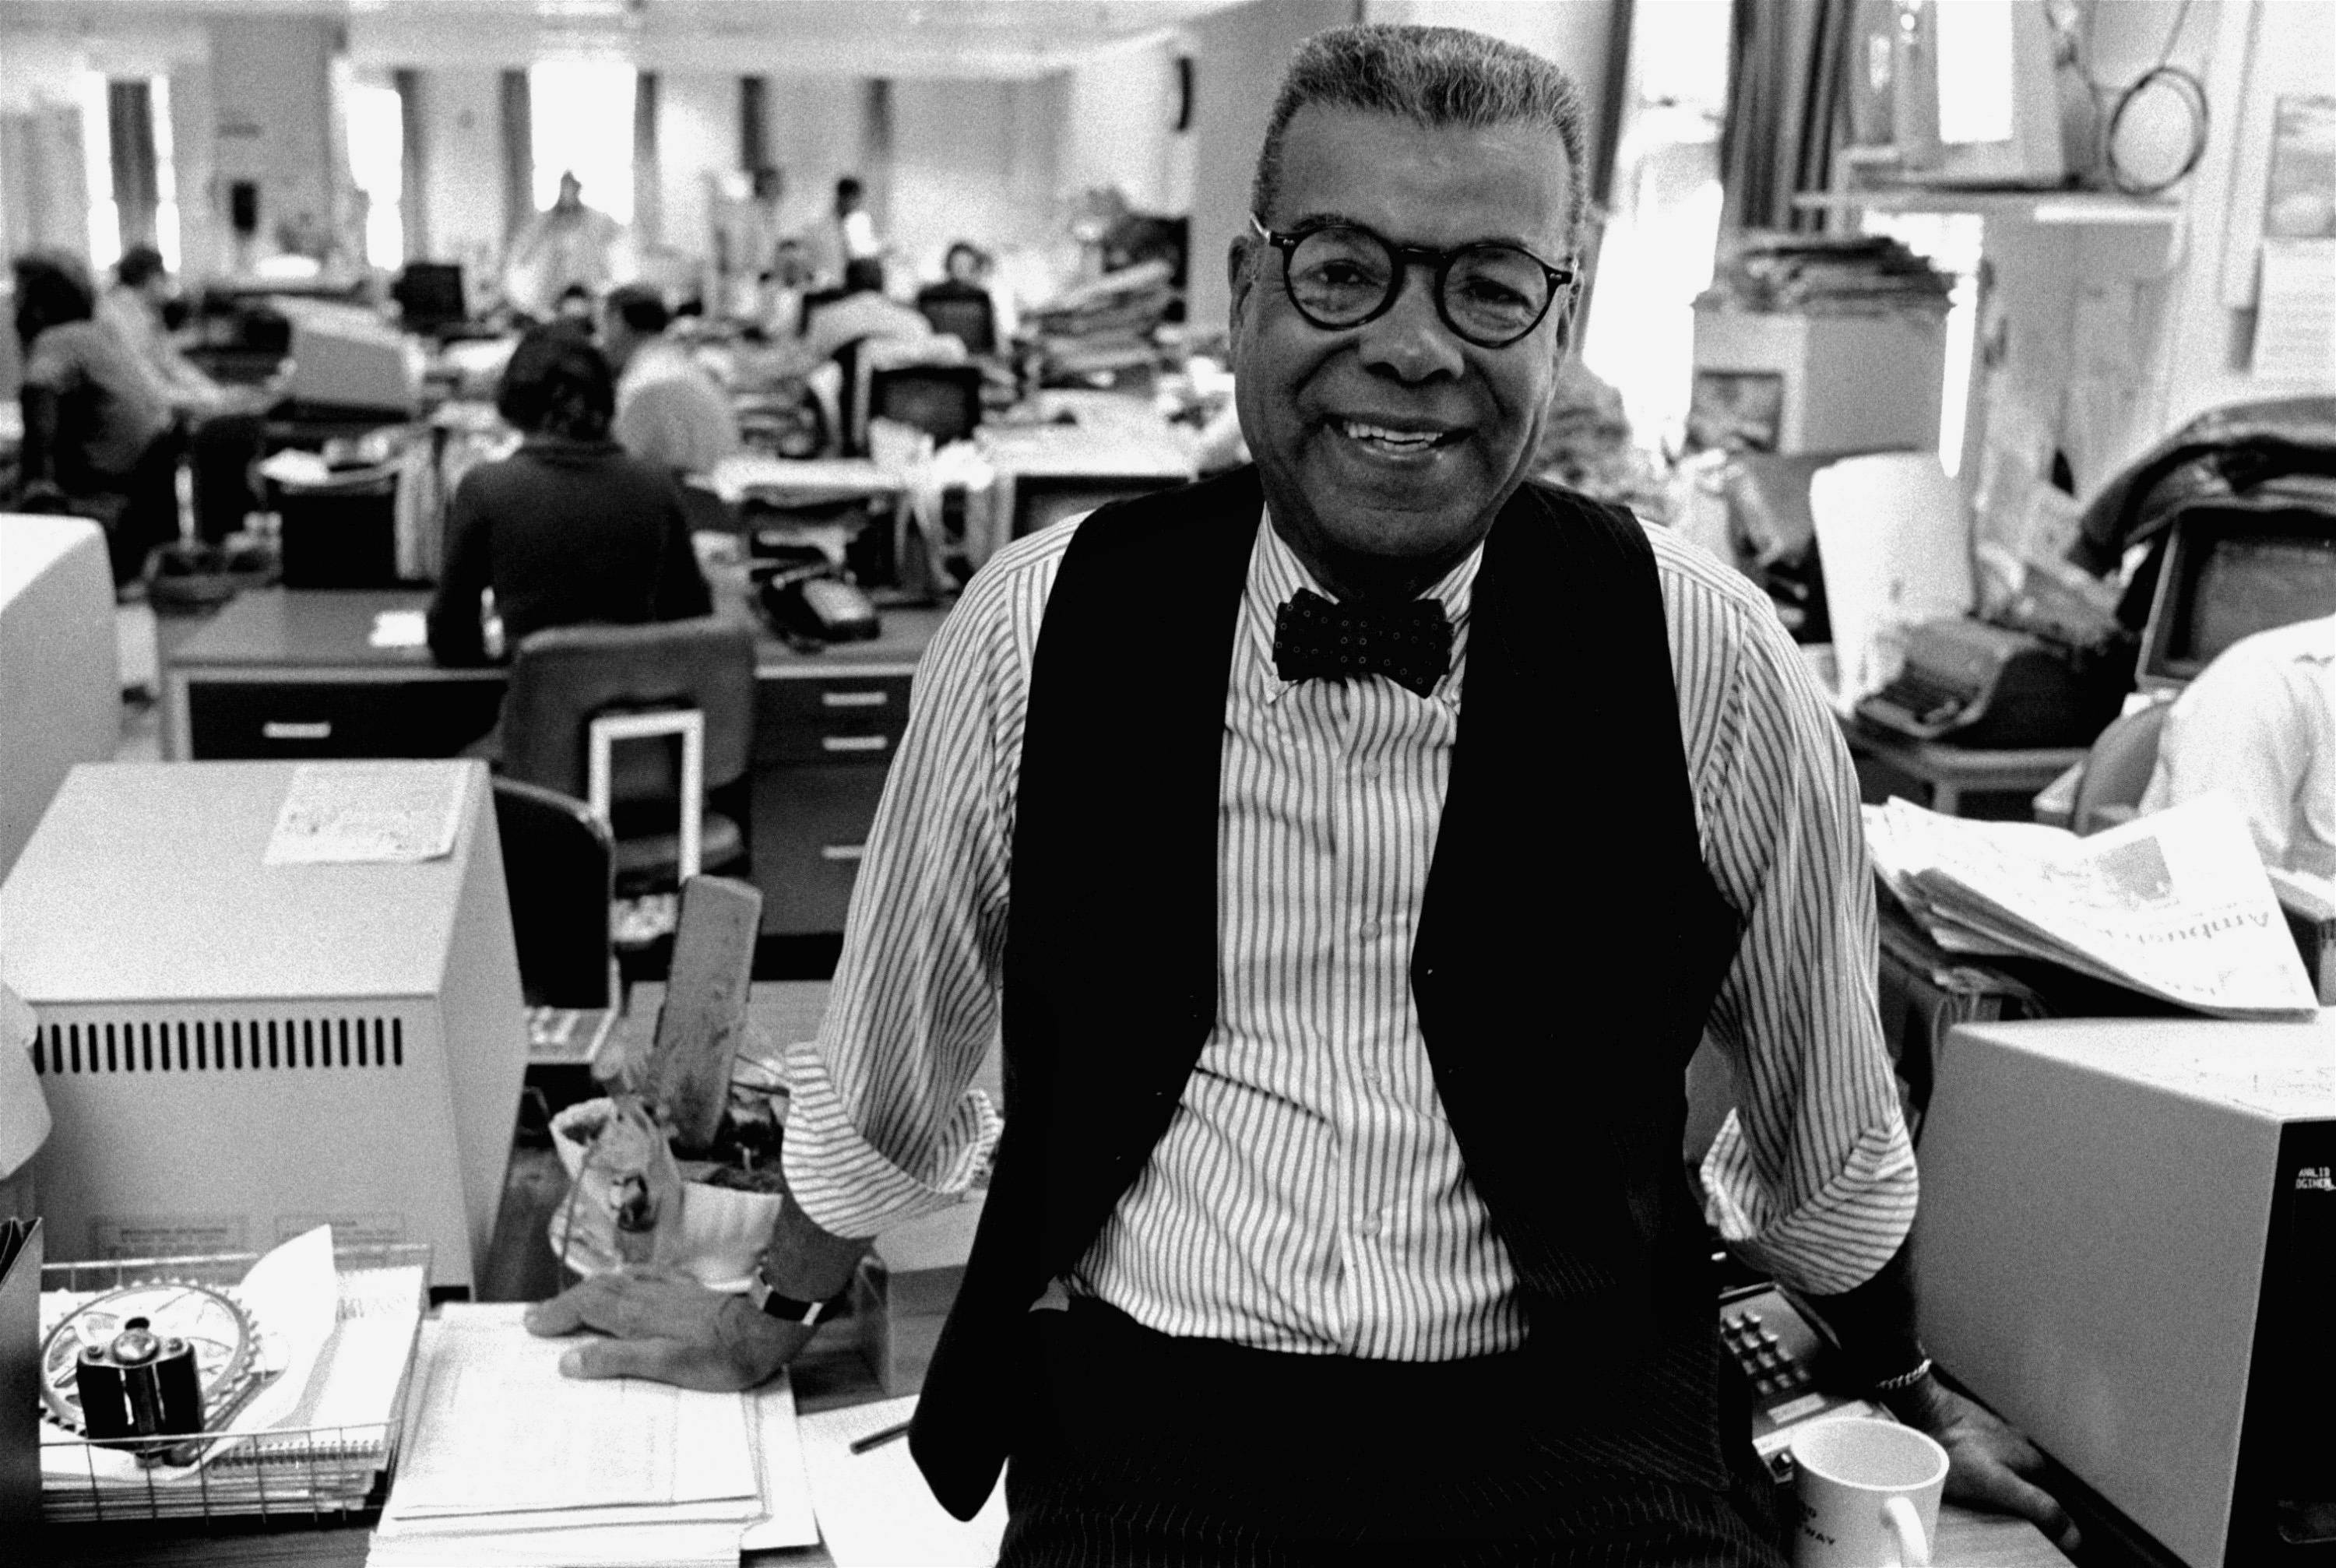 "In this Feb. 15, 1984, file photo, newspaper columnist Chuck Stone poses in the newsroom of the Daily News in Philadelphia. Longtime journalist and educator Charles Sumner ""Chuck"" Stone Jr., one of the founders of the National Association of Black Journalists, has died. He was 89. Allegra Stone said that her father died Sunday, April 6, 2014."